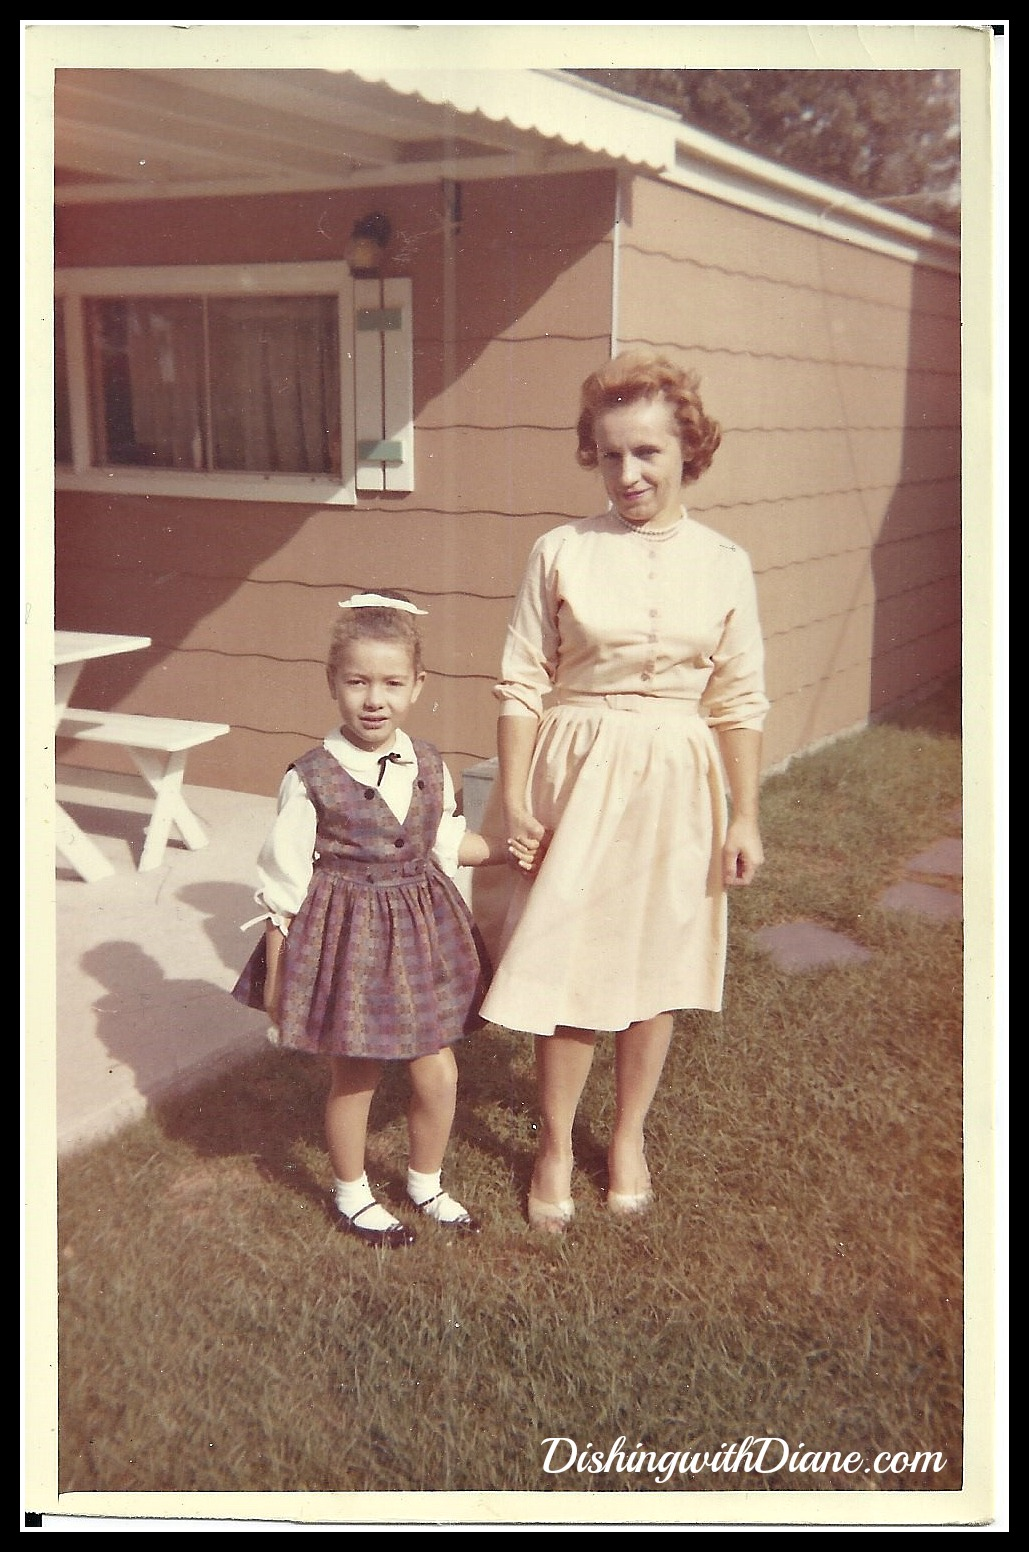 Diane&Mom 1963.jpg DIANE AND MOM FOR BLOG